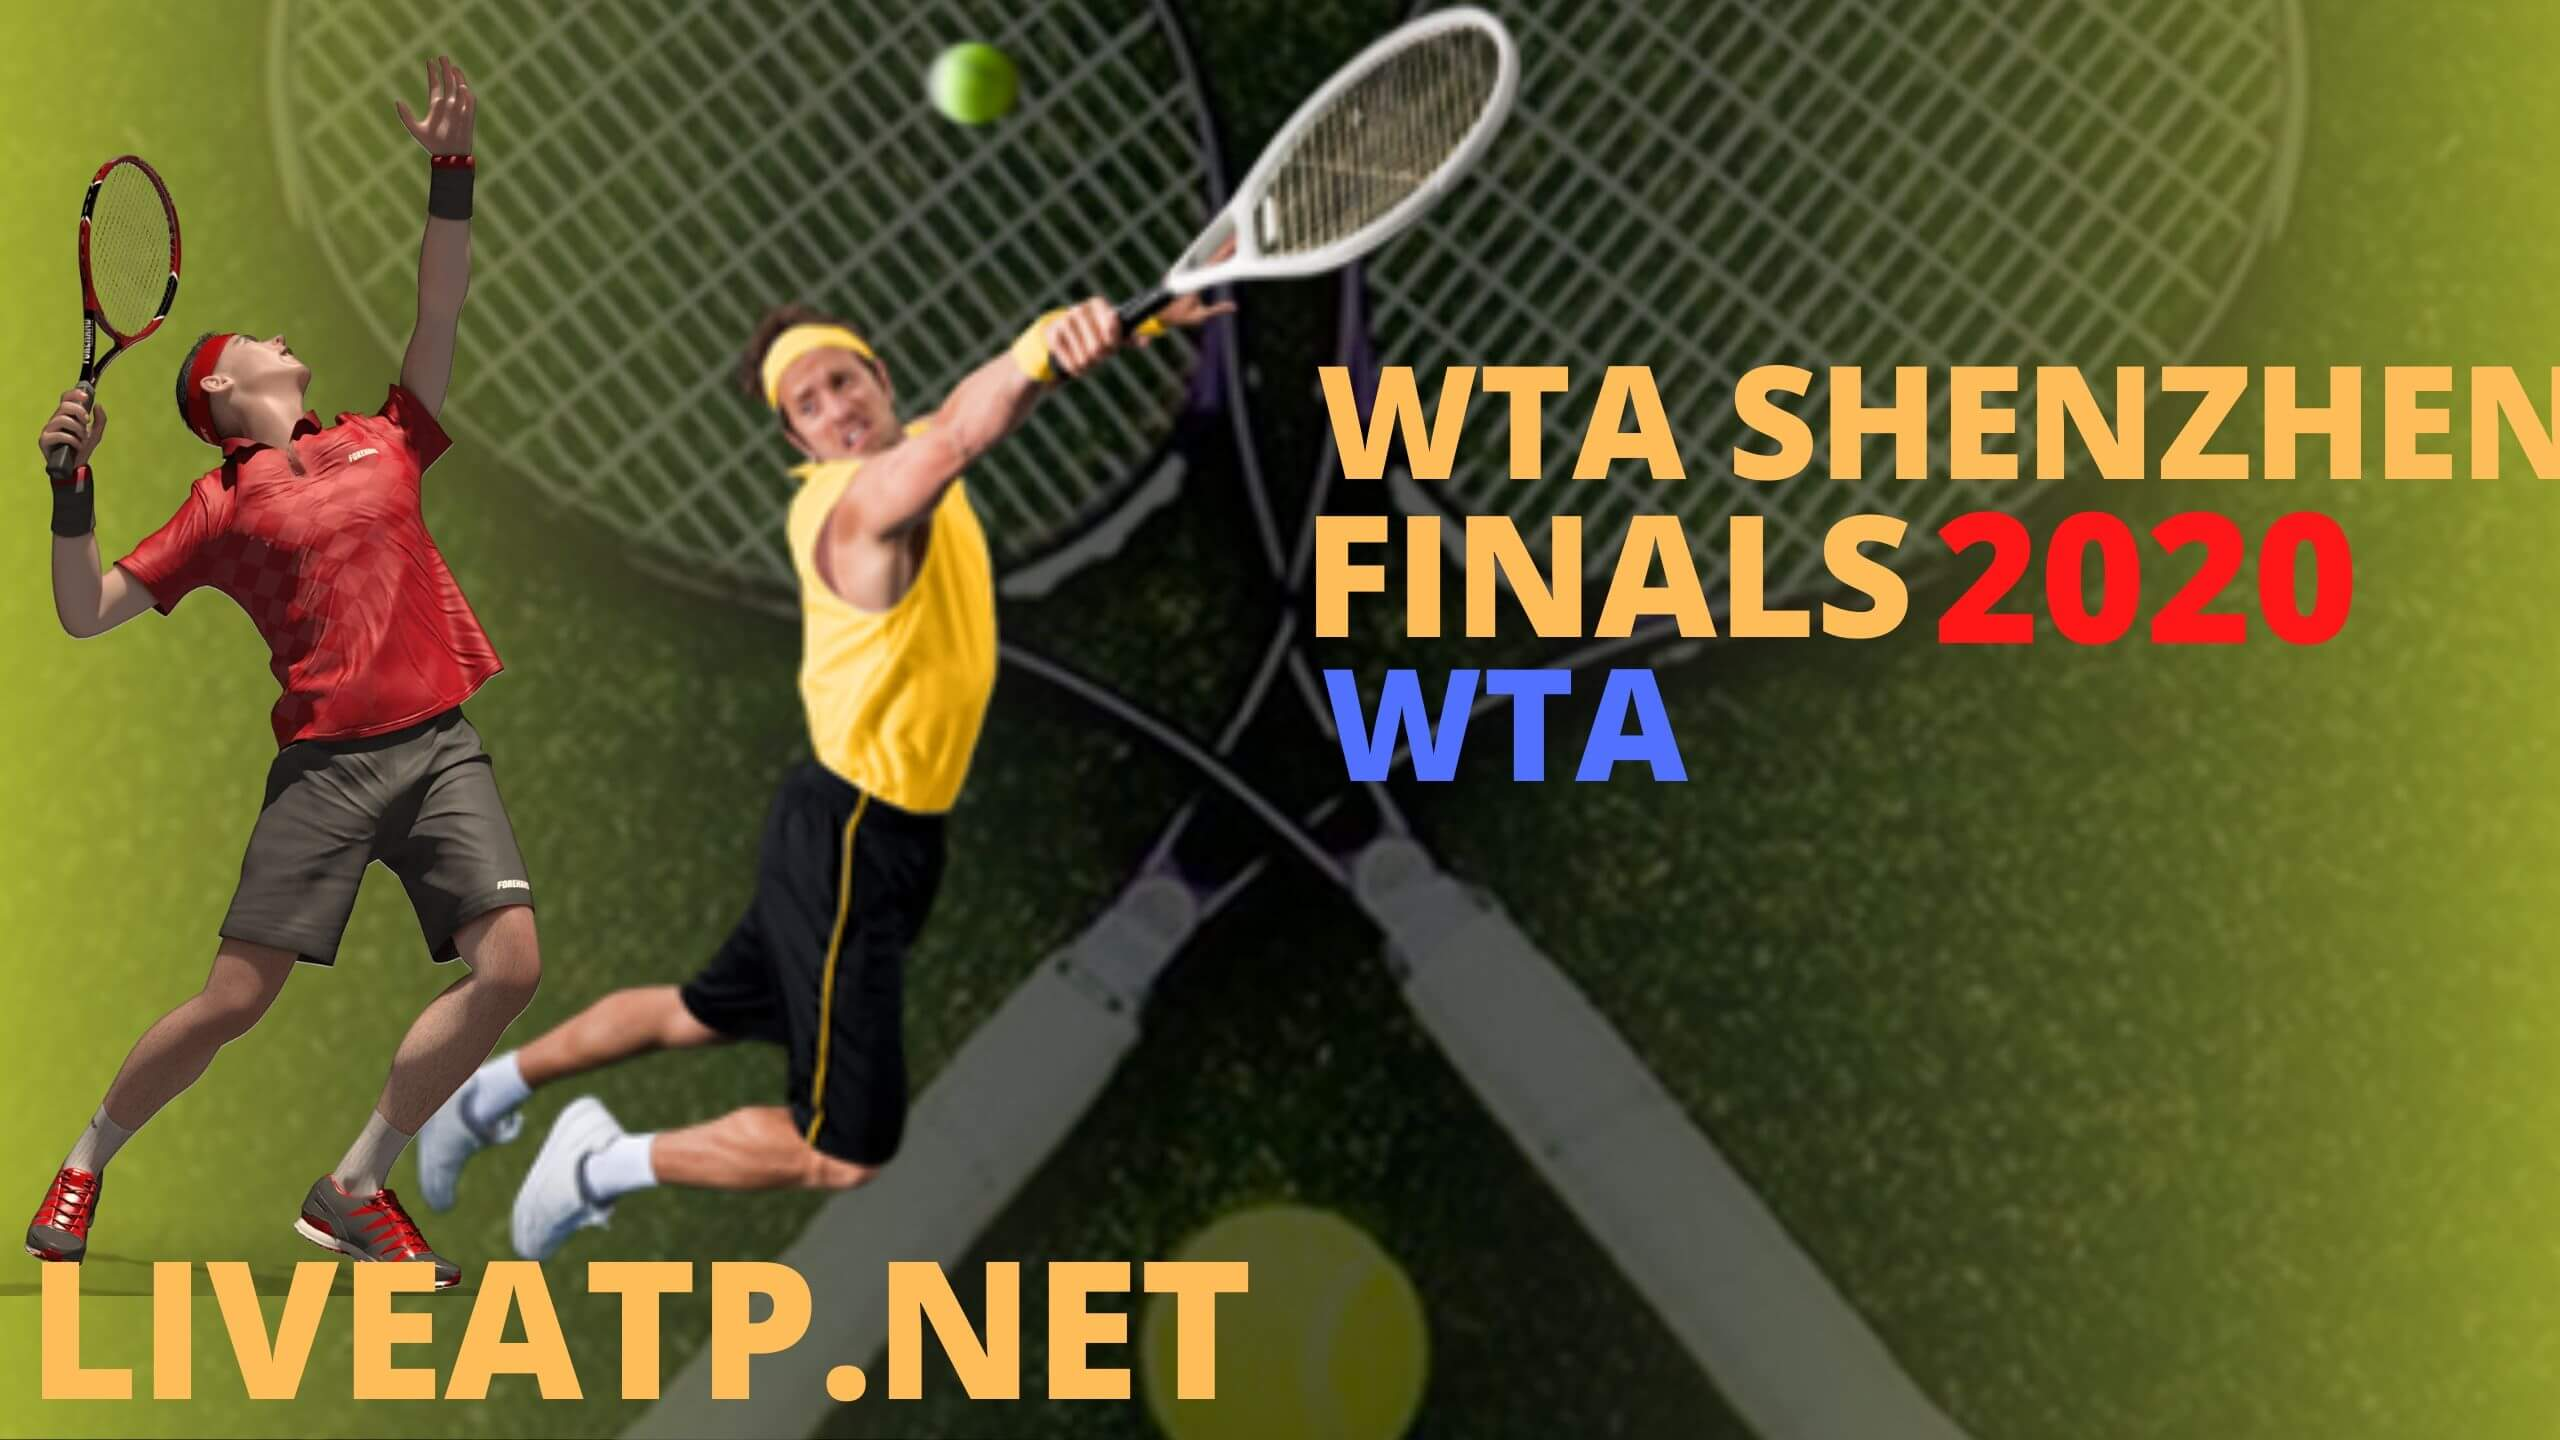 WTA Shenzhen FINALS Live Stream 2020 | Day 2